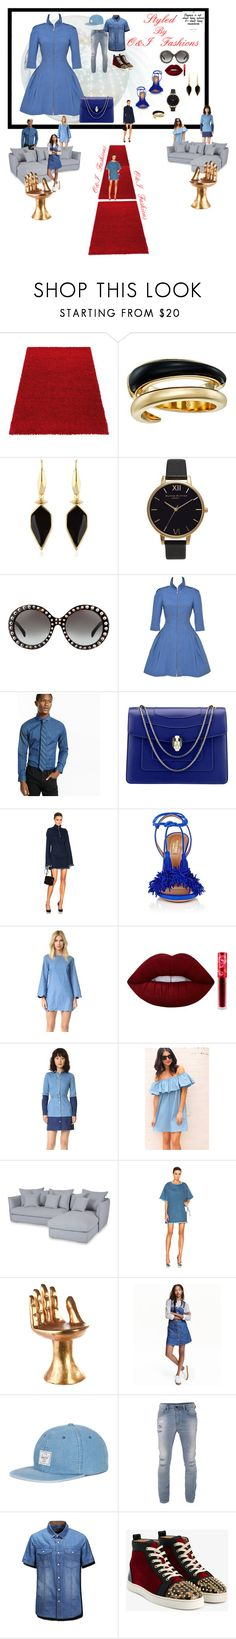 """Denim- Fashion Week!!!"" by olafor ❤ liked on Polyvore featuring Michael Kors, Isabel Marant, Olivia Burton, Prada, Chanel, Express, Bulgari, Marques'Almeida, Aquazzura and English Factory"